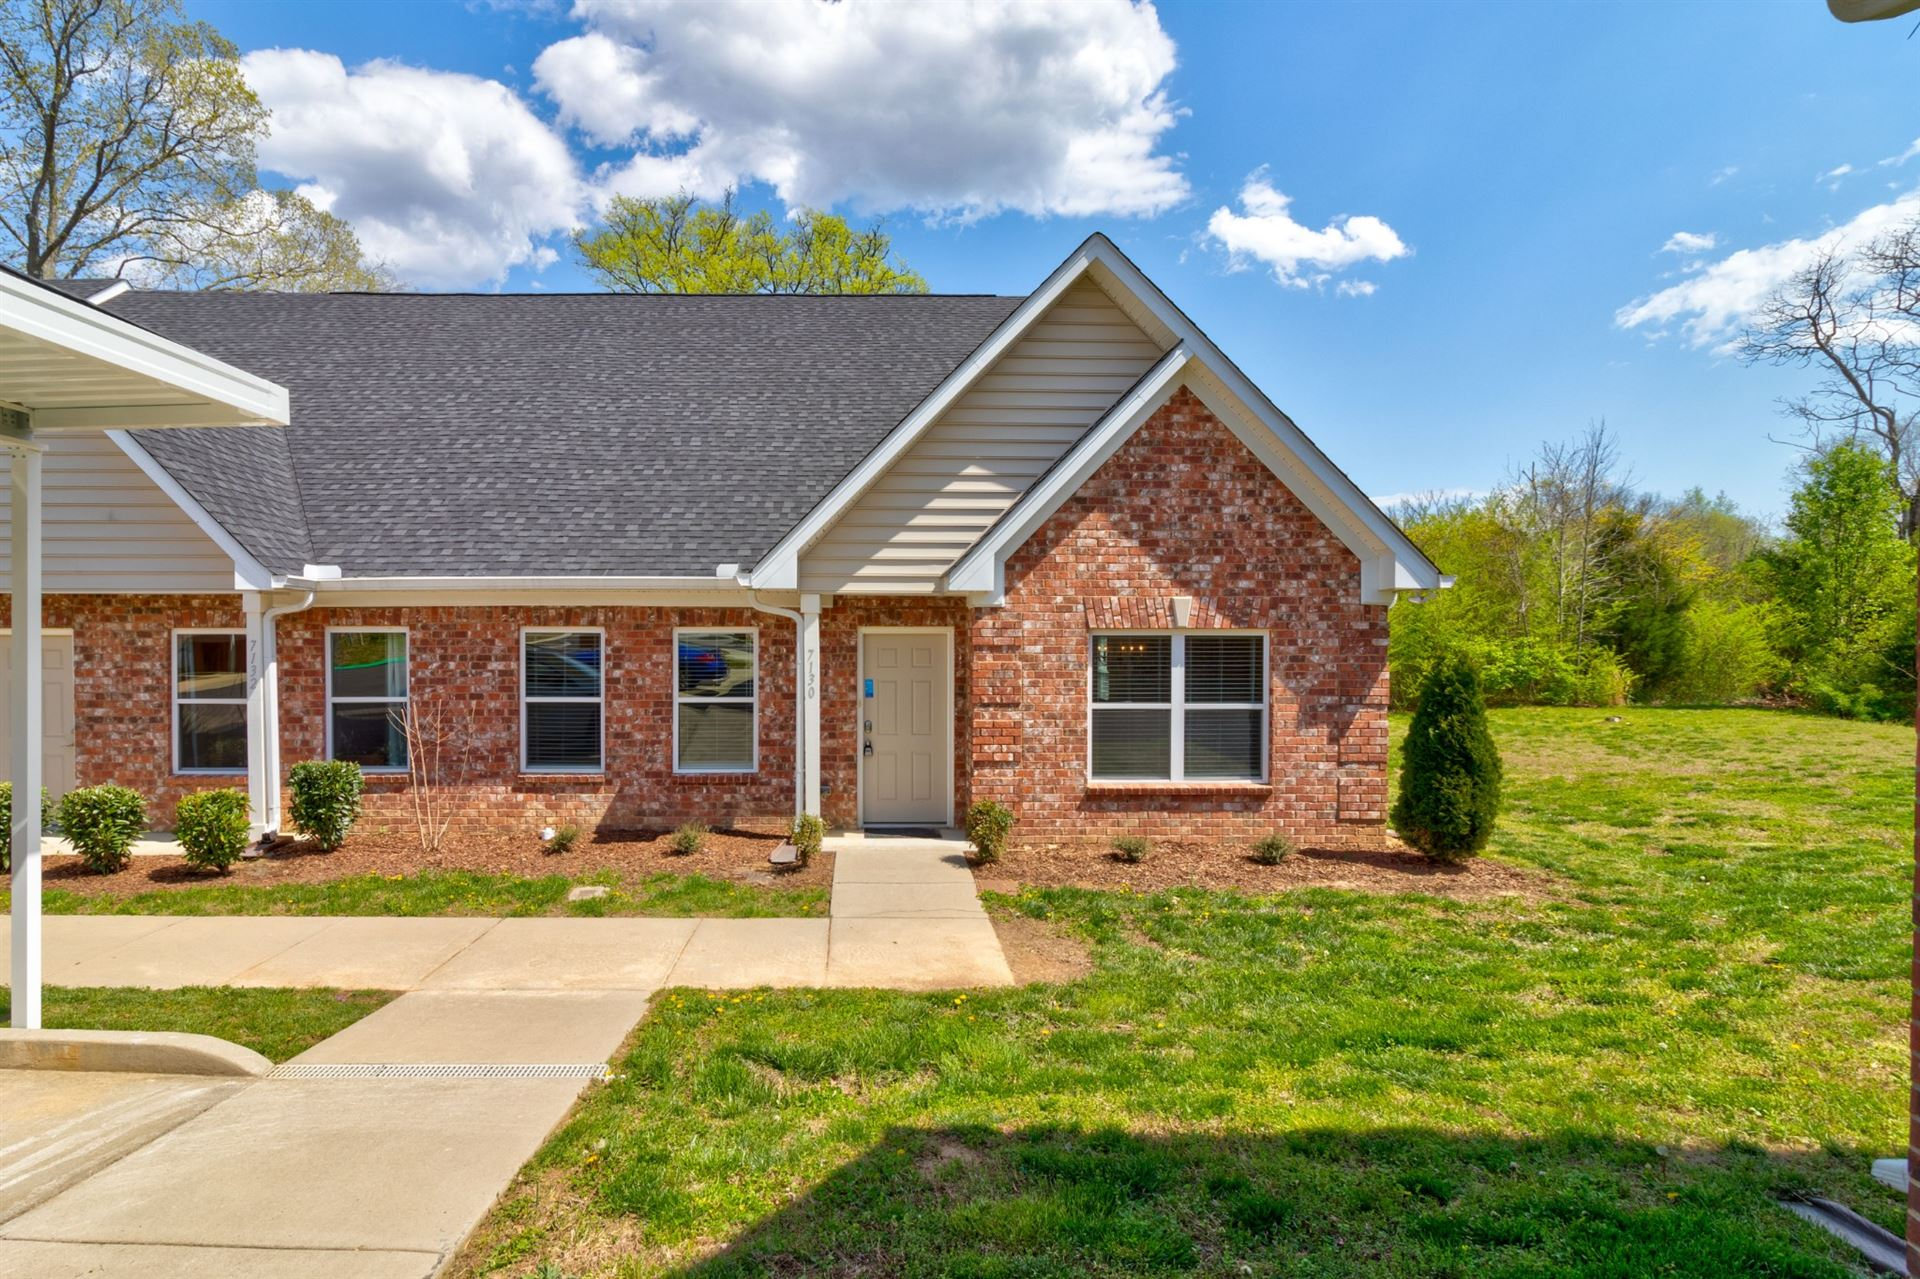 7130 Fernvale Springs Way, Fairview, TN 37062 - MLS#: 2243436